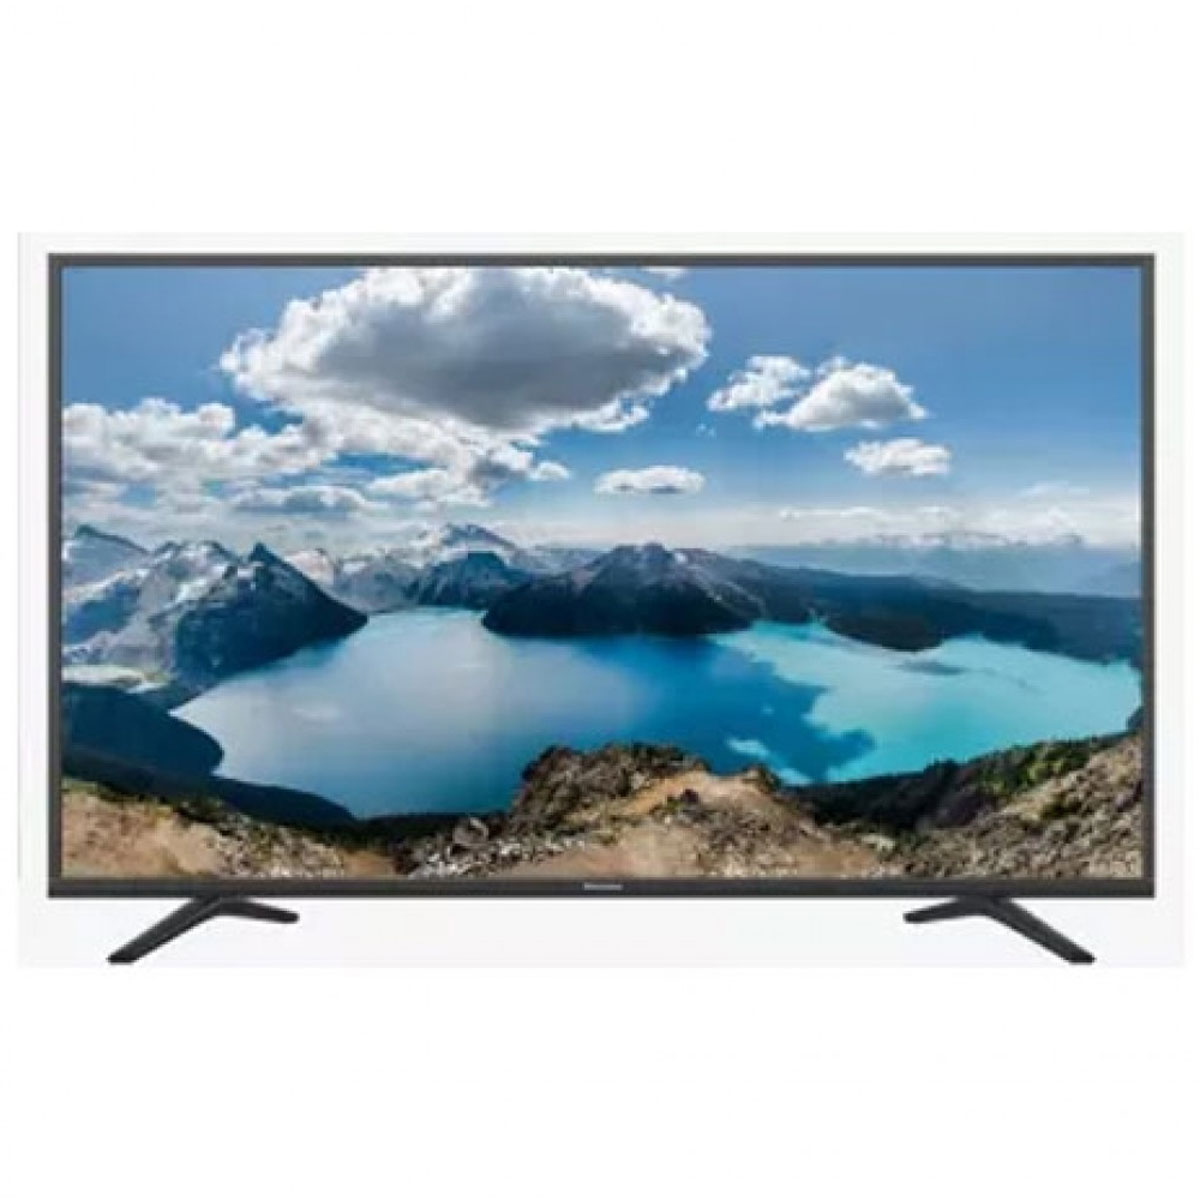 Hisense 49 Inch FHD Smart LED TV (49E5100EX)